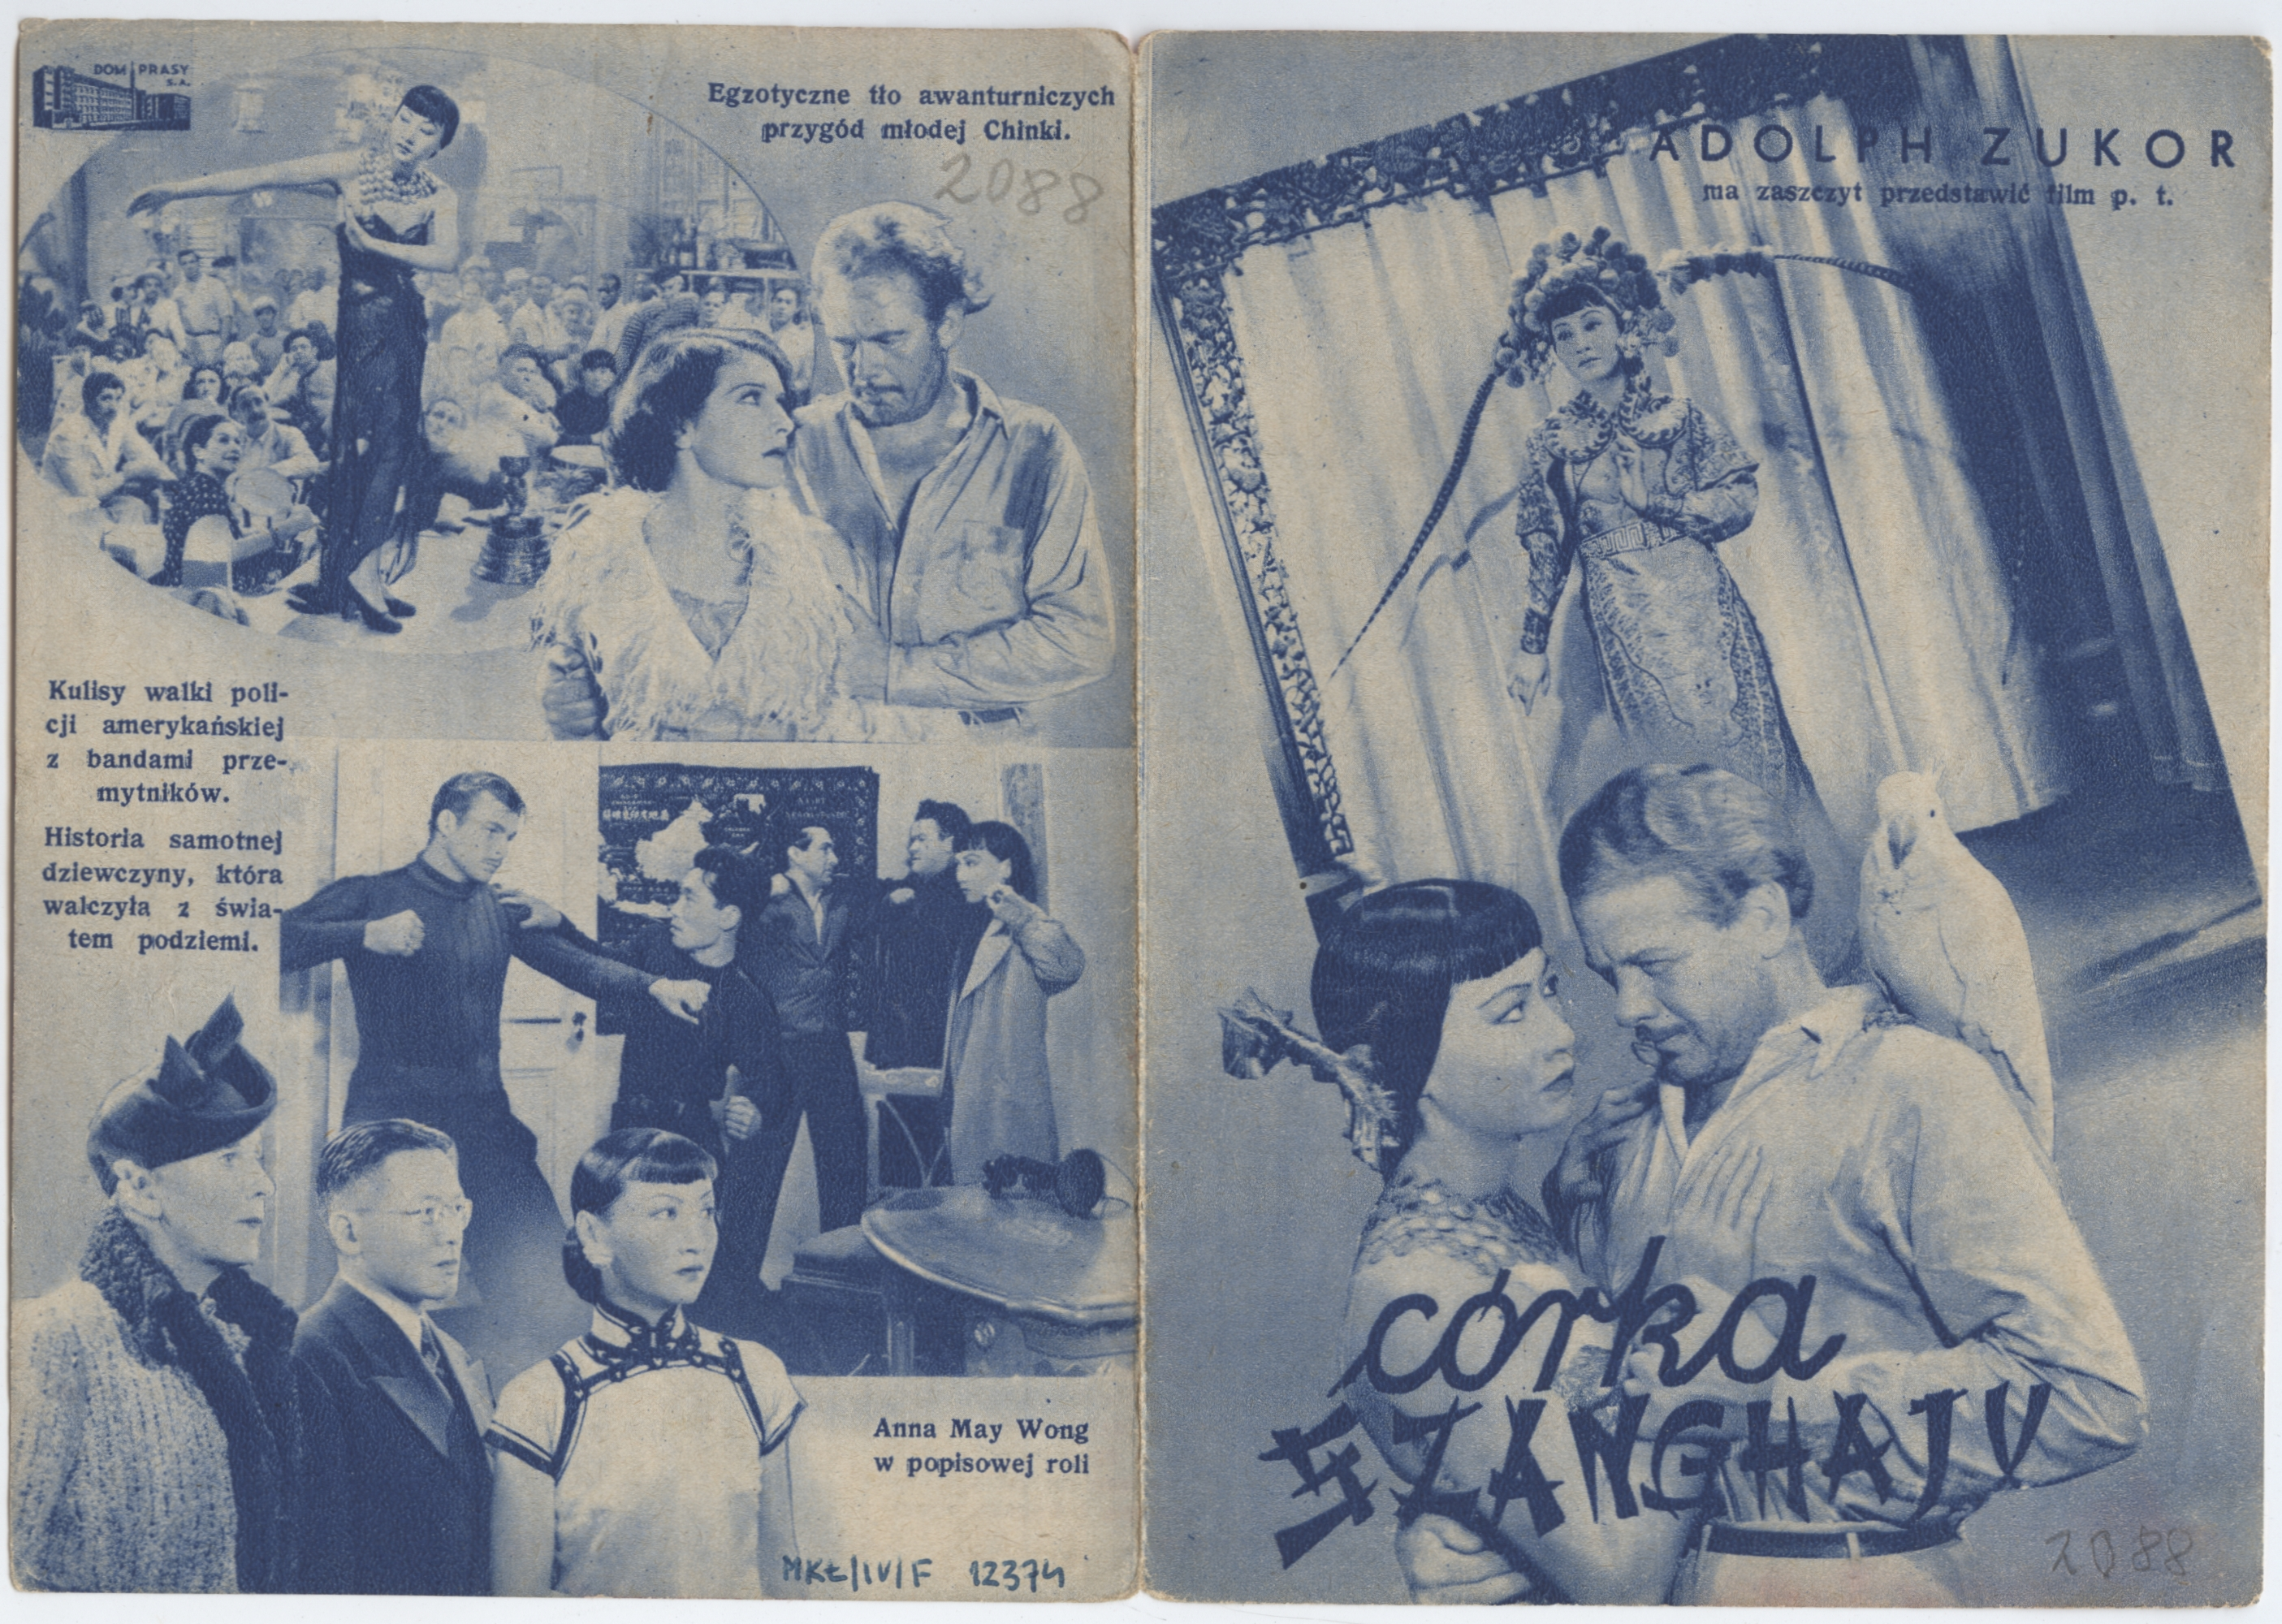 Charles Bickford, Philip Ahn, Evelyn Brent, Wong Chung, Buster Crabbe, Cecil Cunningham, Fred Kohler, J. Carrol Naish, and Anna May Wong in Daughter of Shanghai (1937)